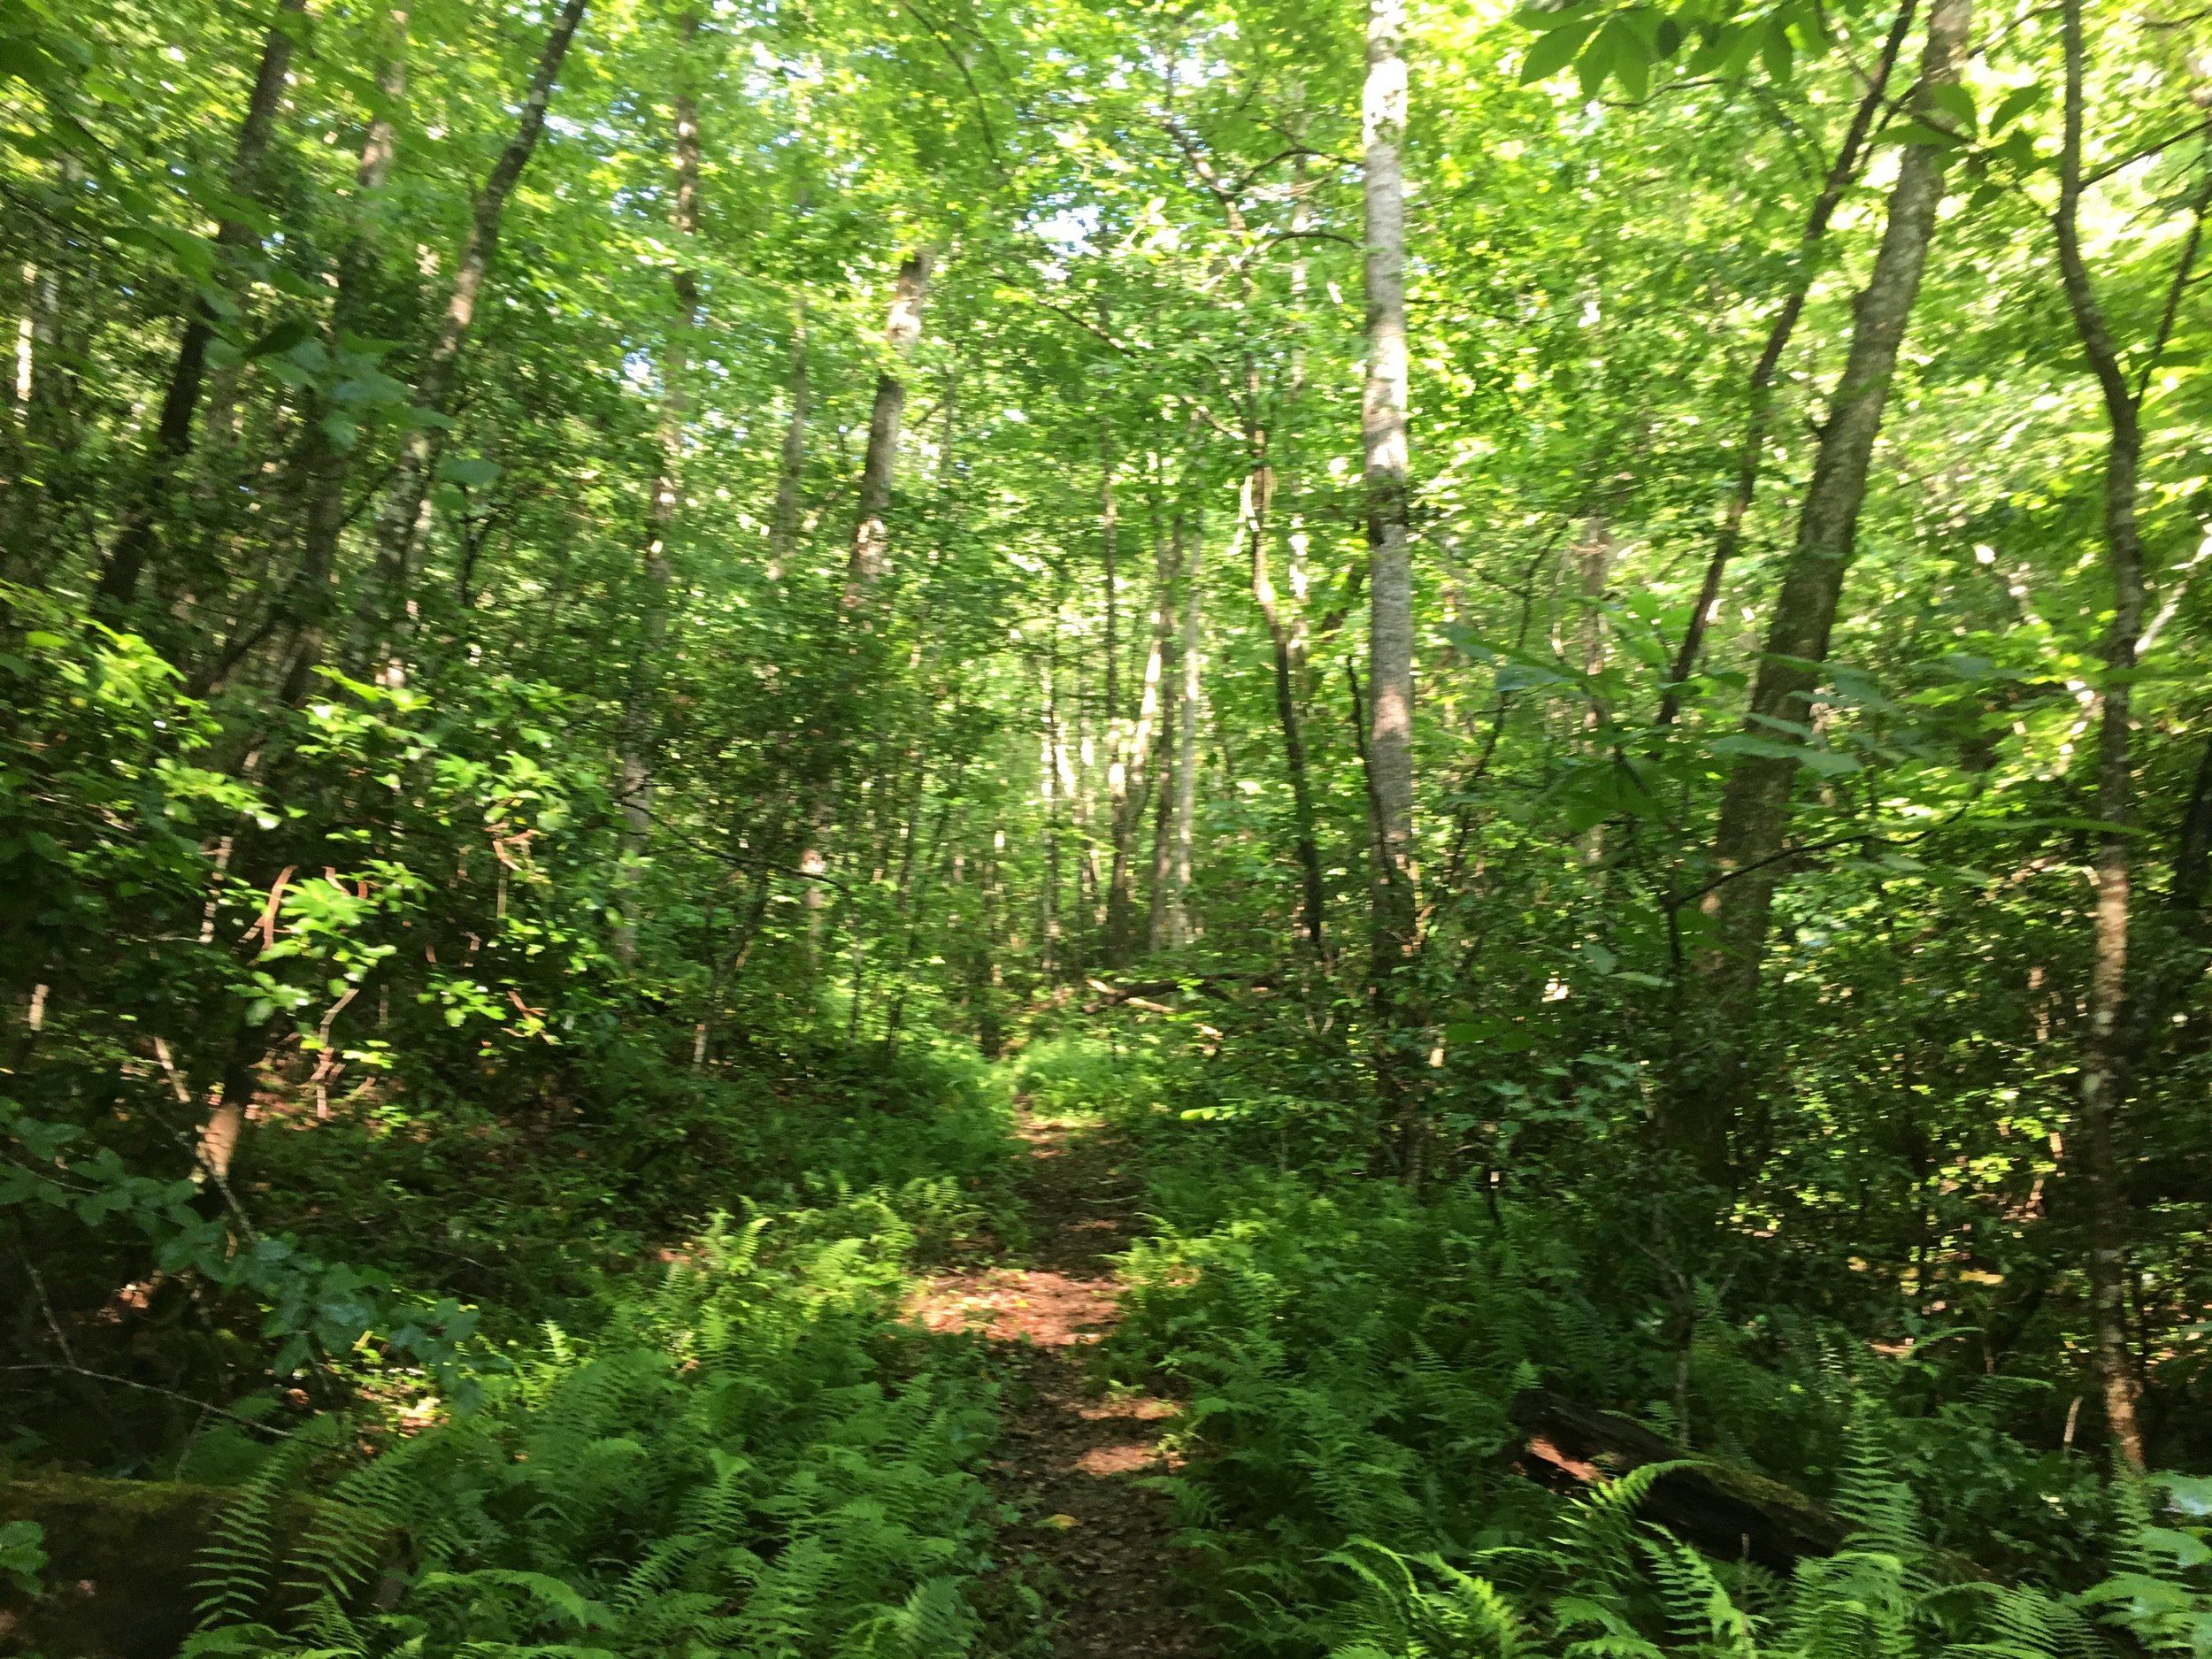 Singletrack through the lush forest leading toward Winding Blade Road.